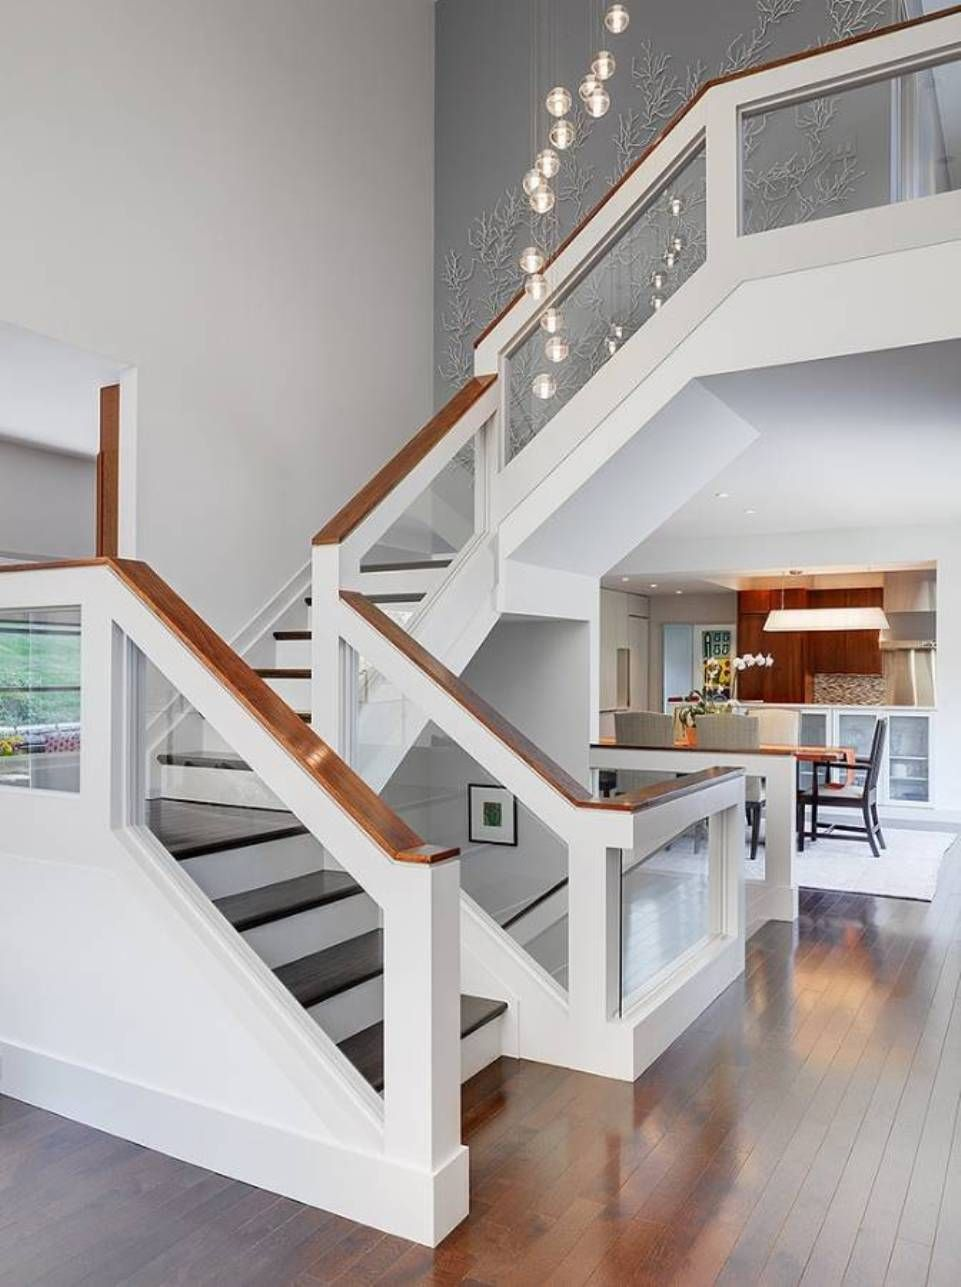 Home Design And Decor Decorative Handrail Staircase | Wooden Stairs Railing Design With Glass